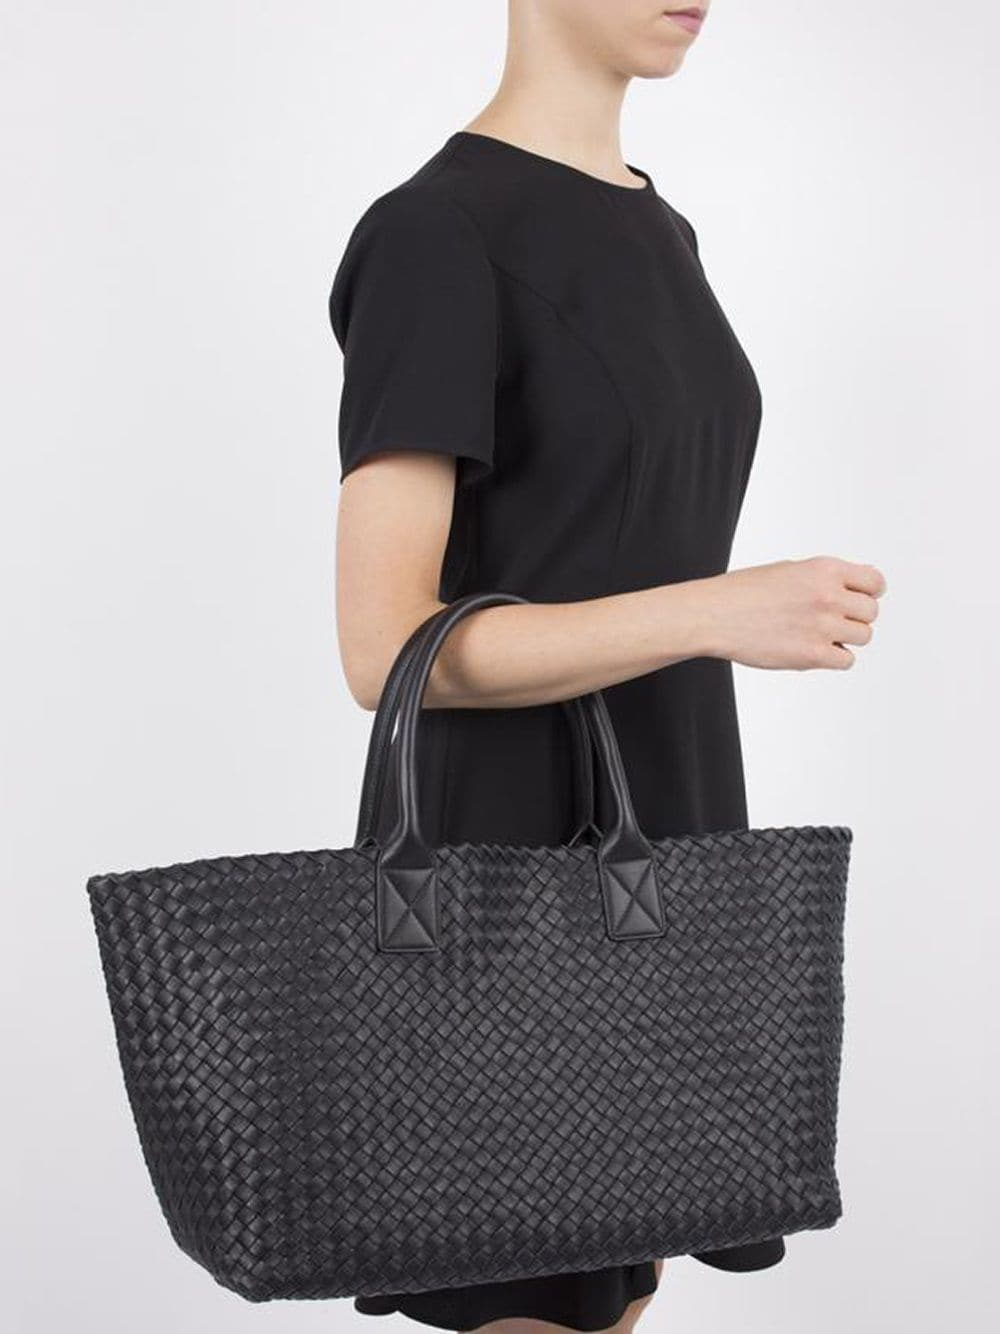 The Cabat tote bag is crafted from weaving about 100 double-faced leather strips